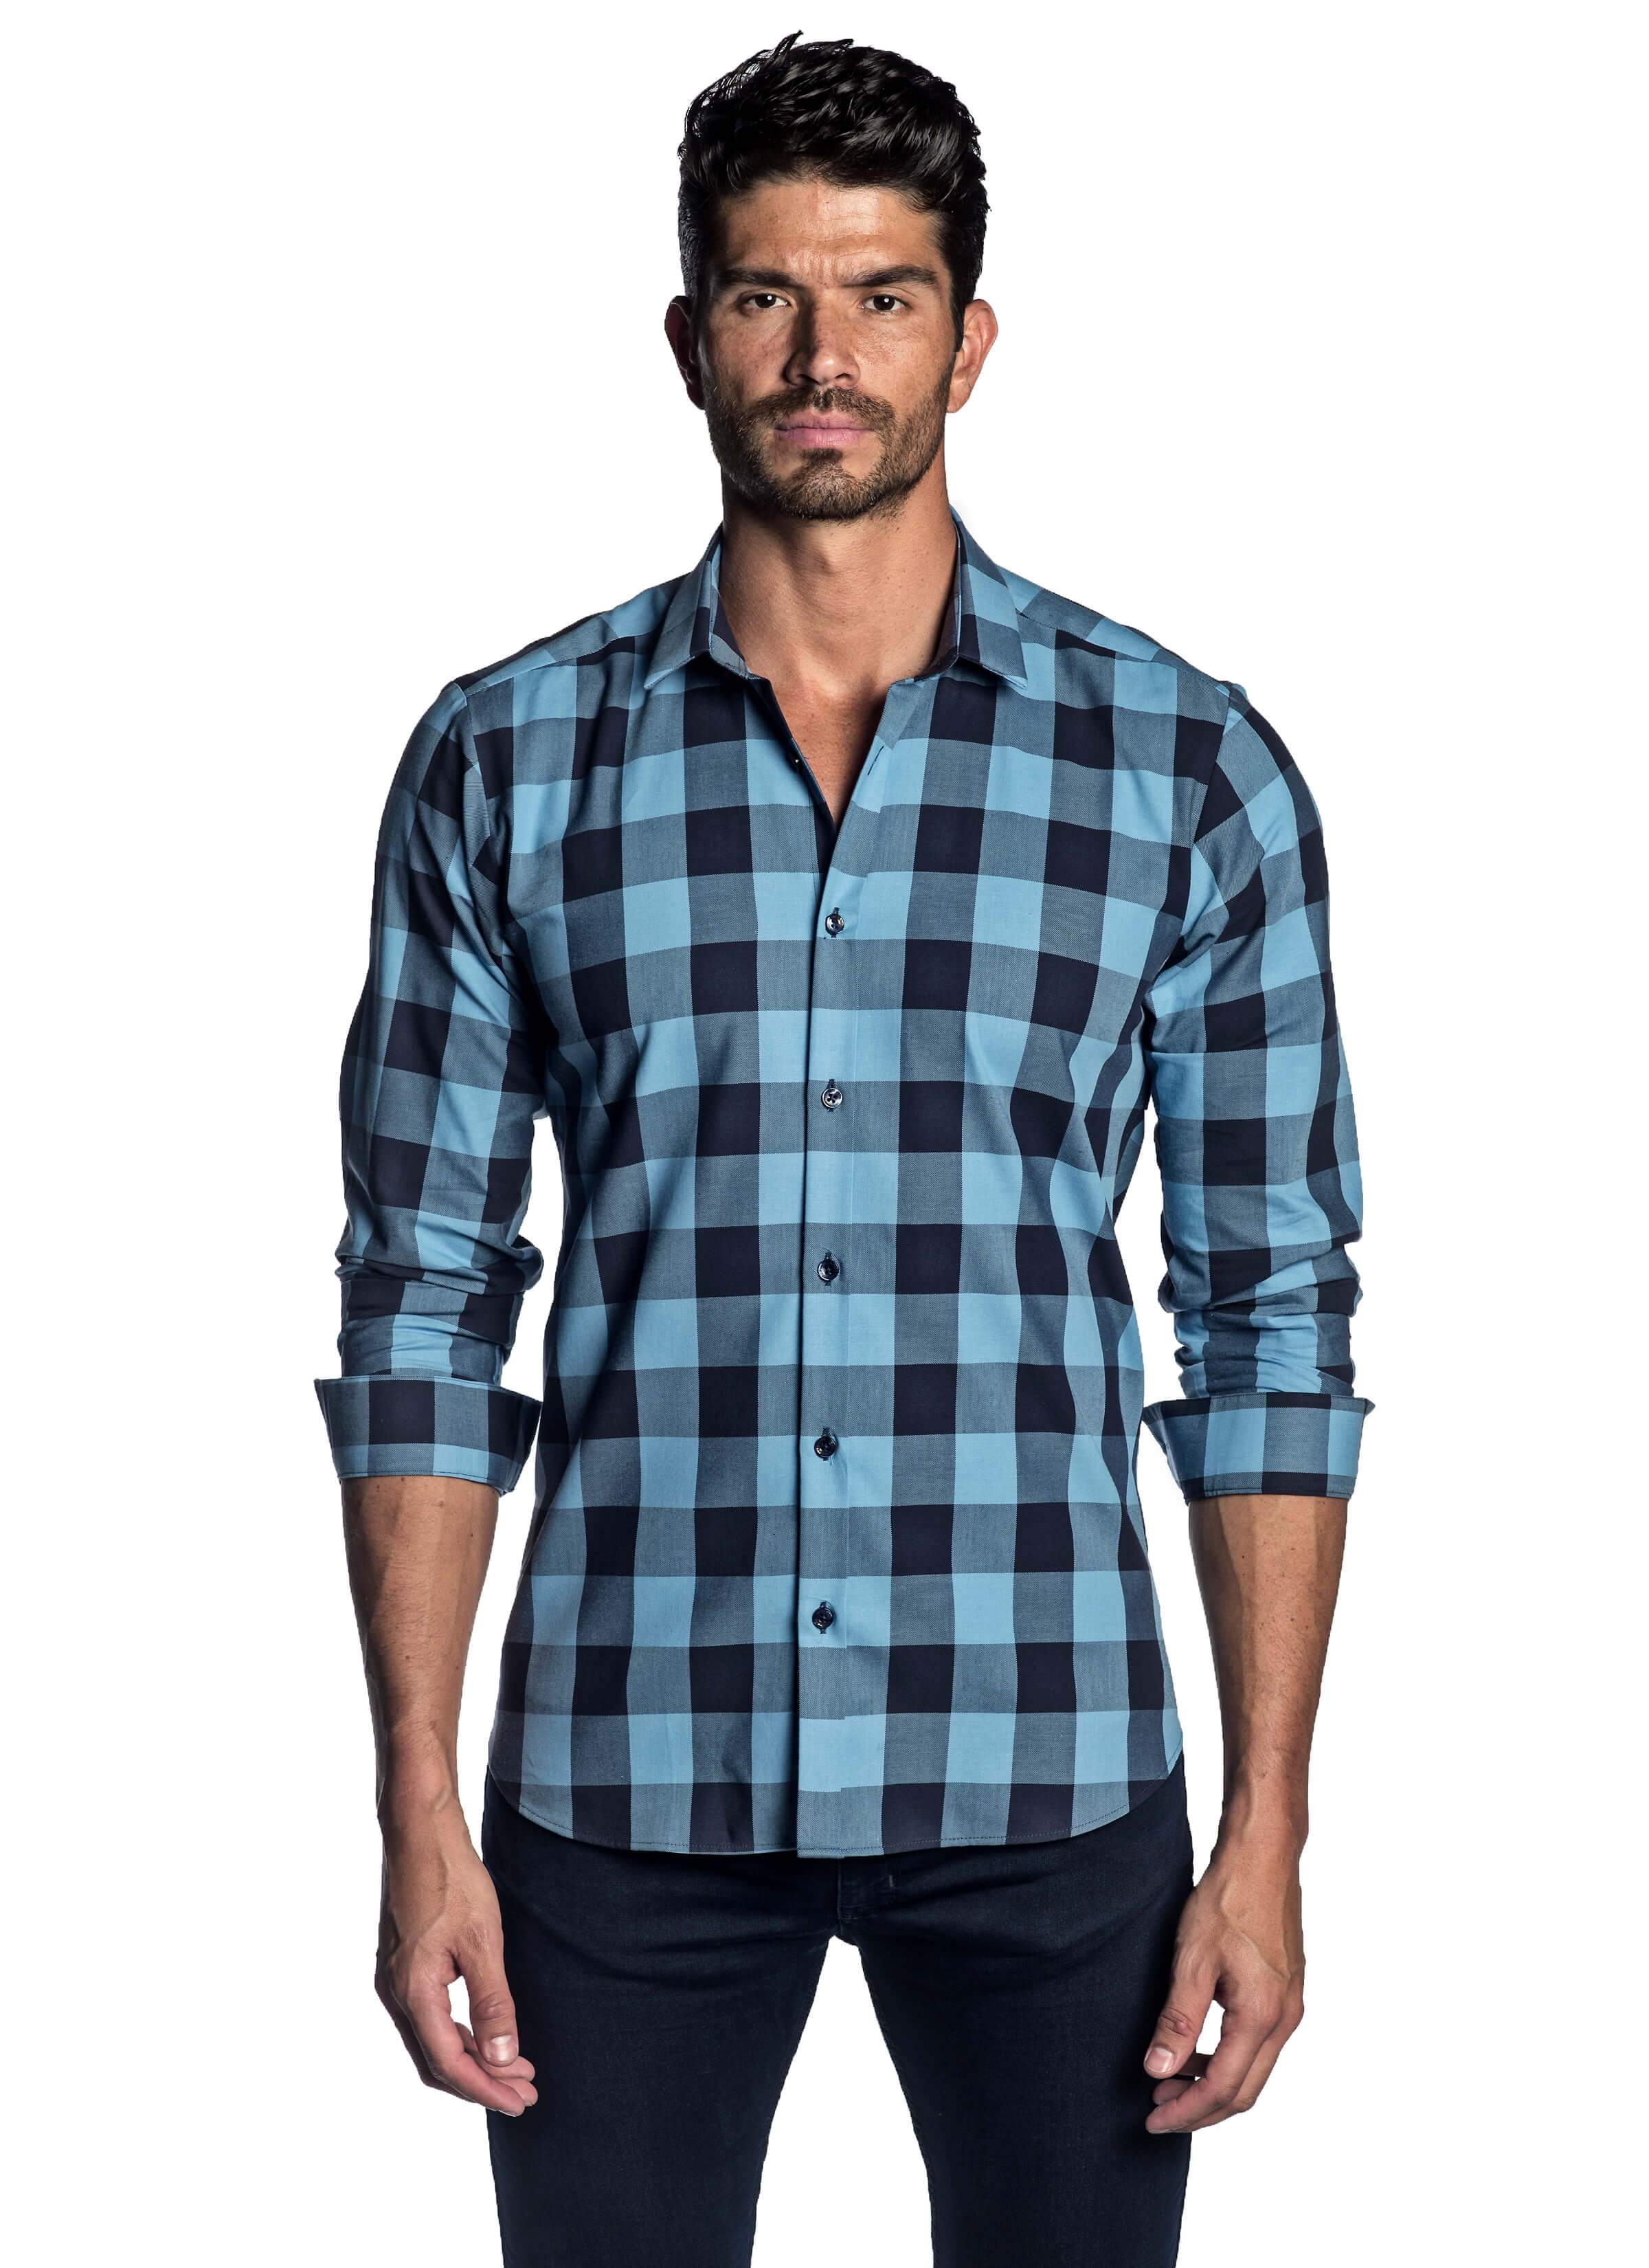 Light Blue and Navy Check Shirt for Men AH-T-2002